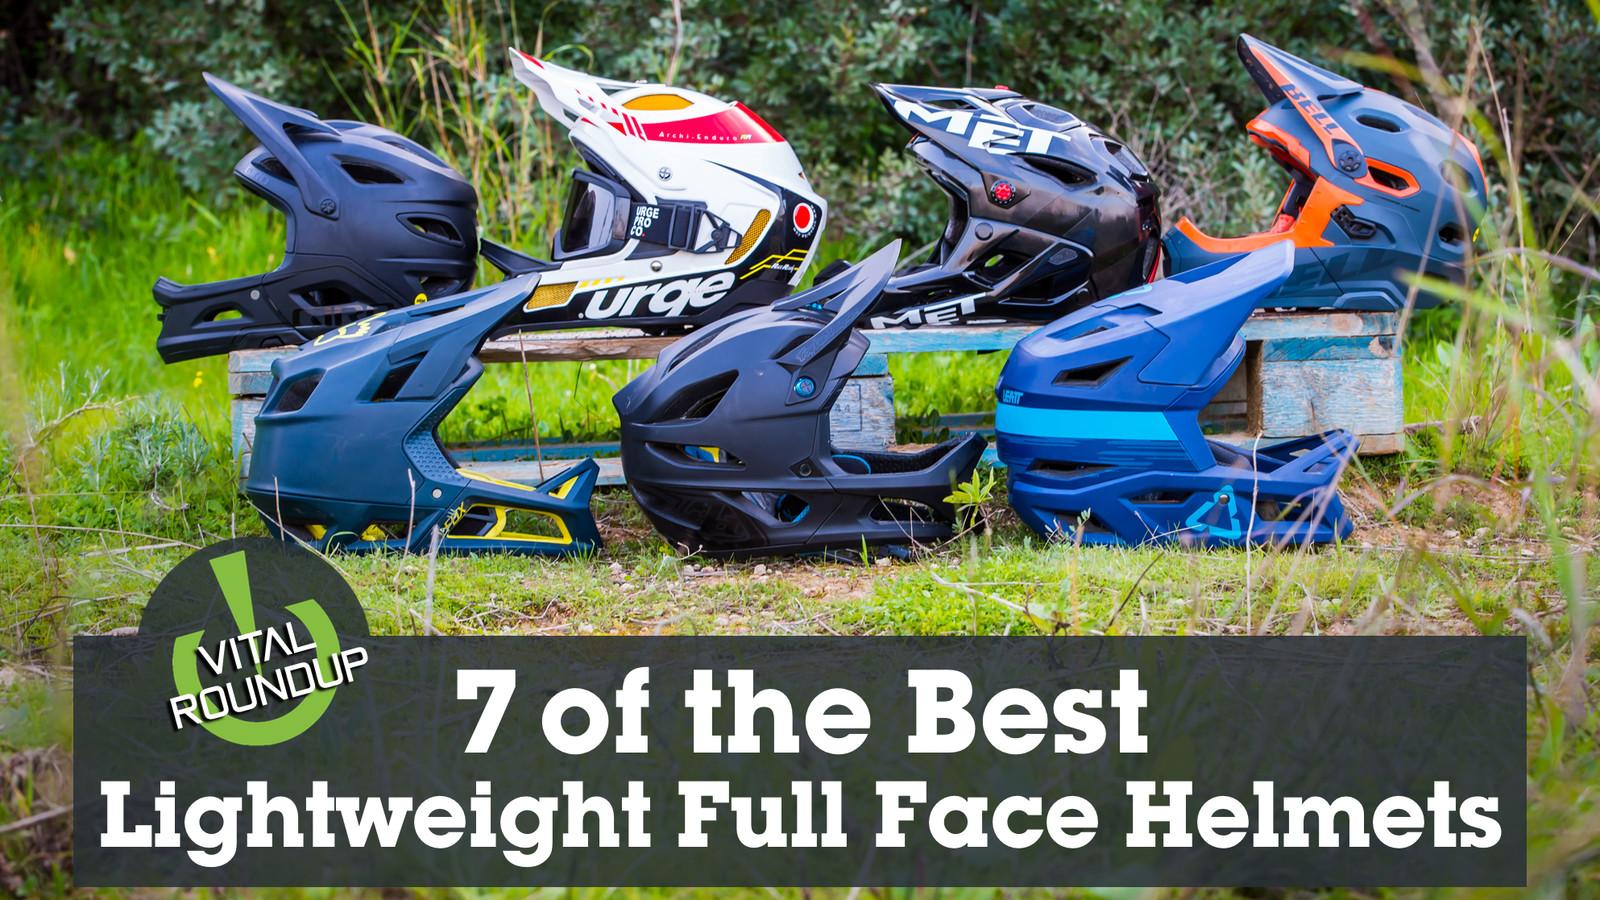 6857e69fb67 7 of the Best Lightweight Full Face Helmets